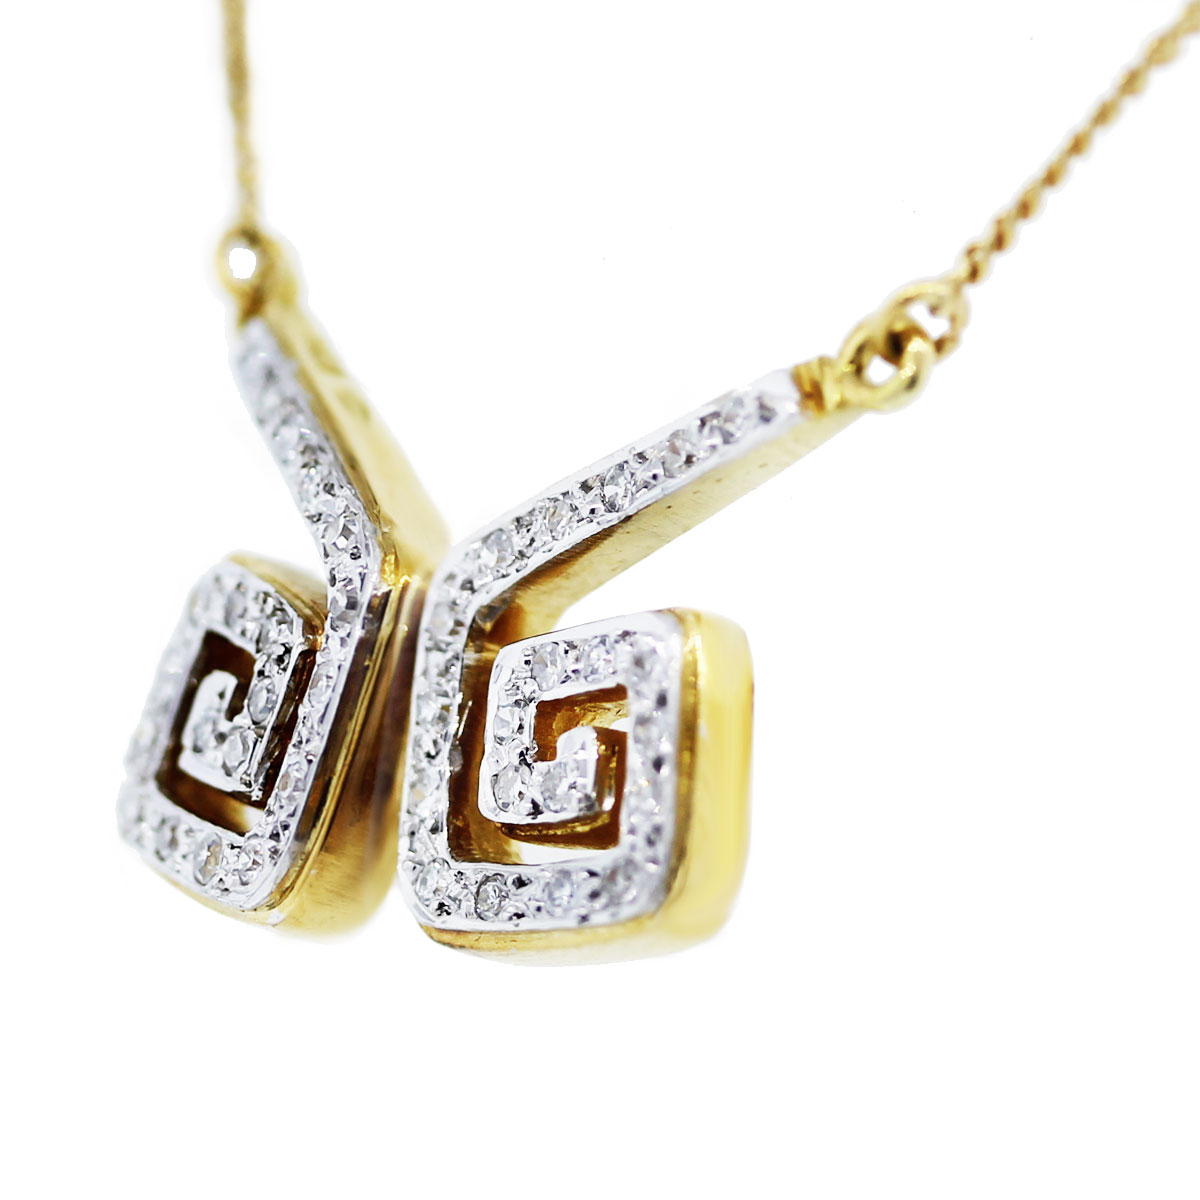 18k Gold Diamond Necklace and Pendant